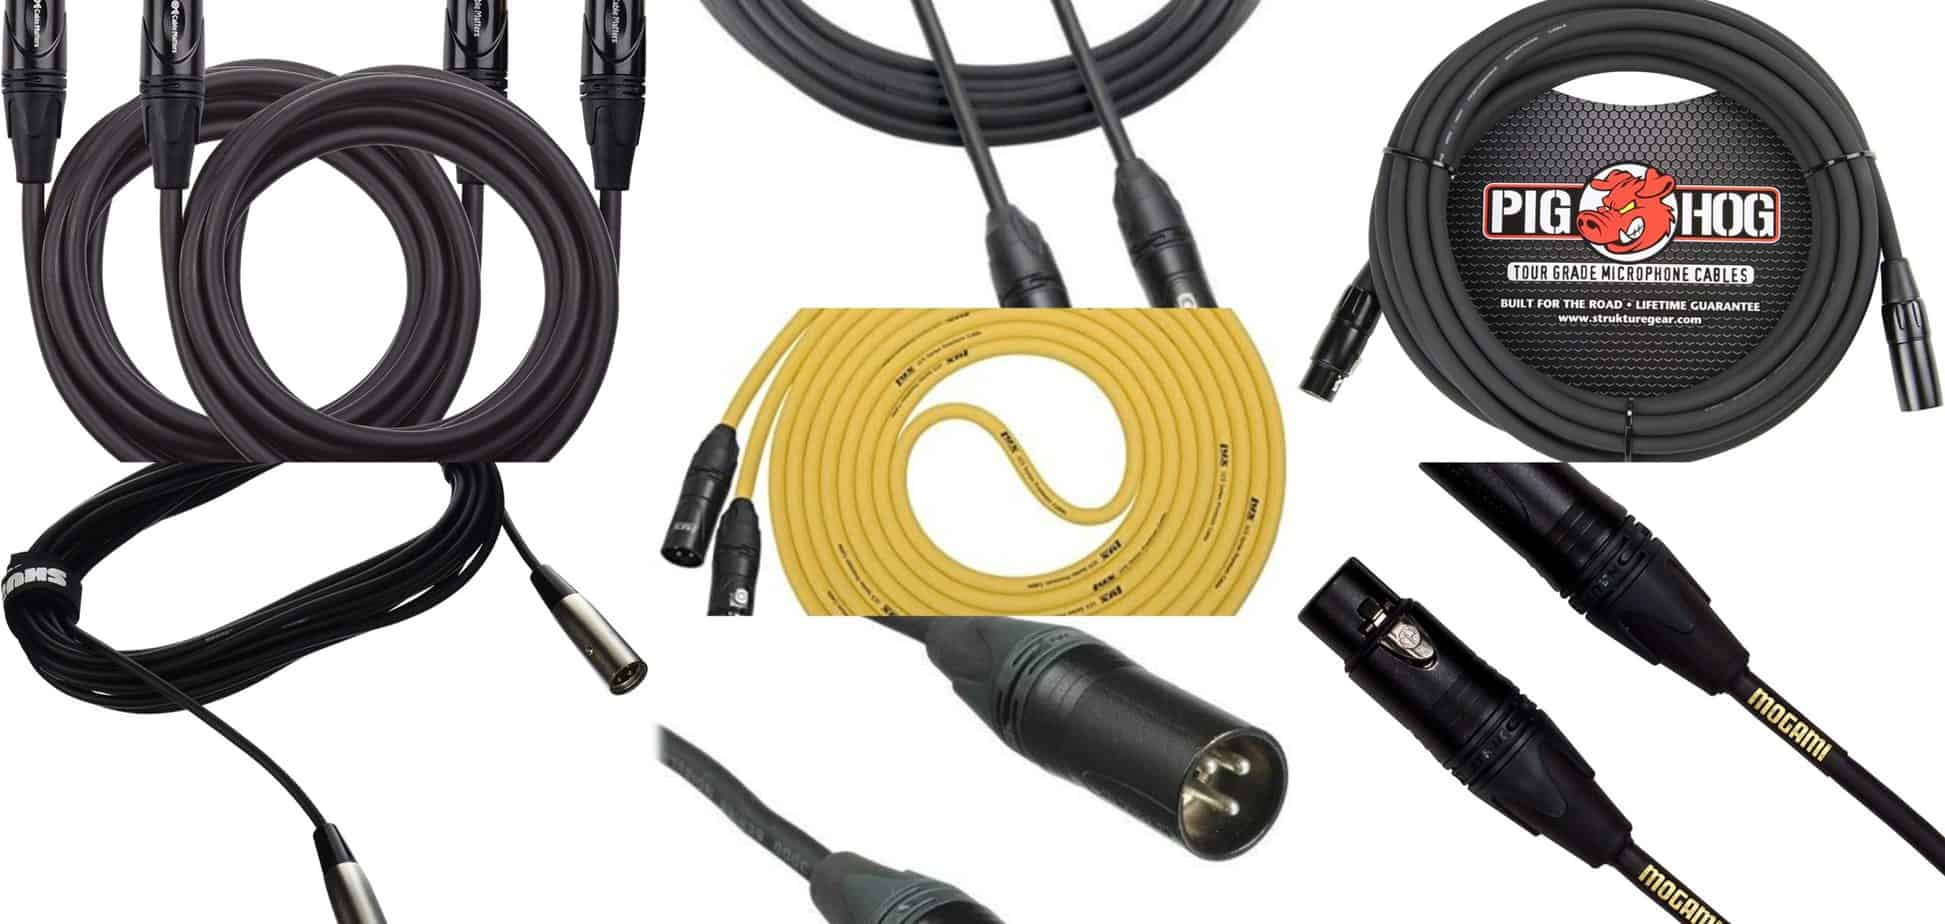 xlr cables scaled